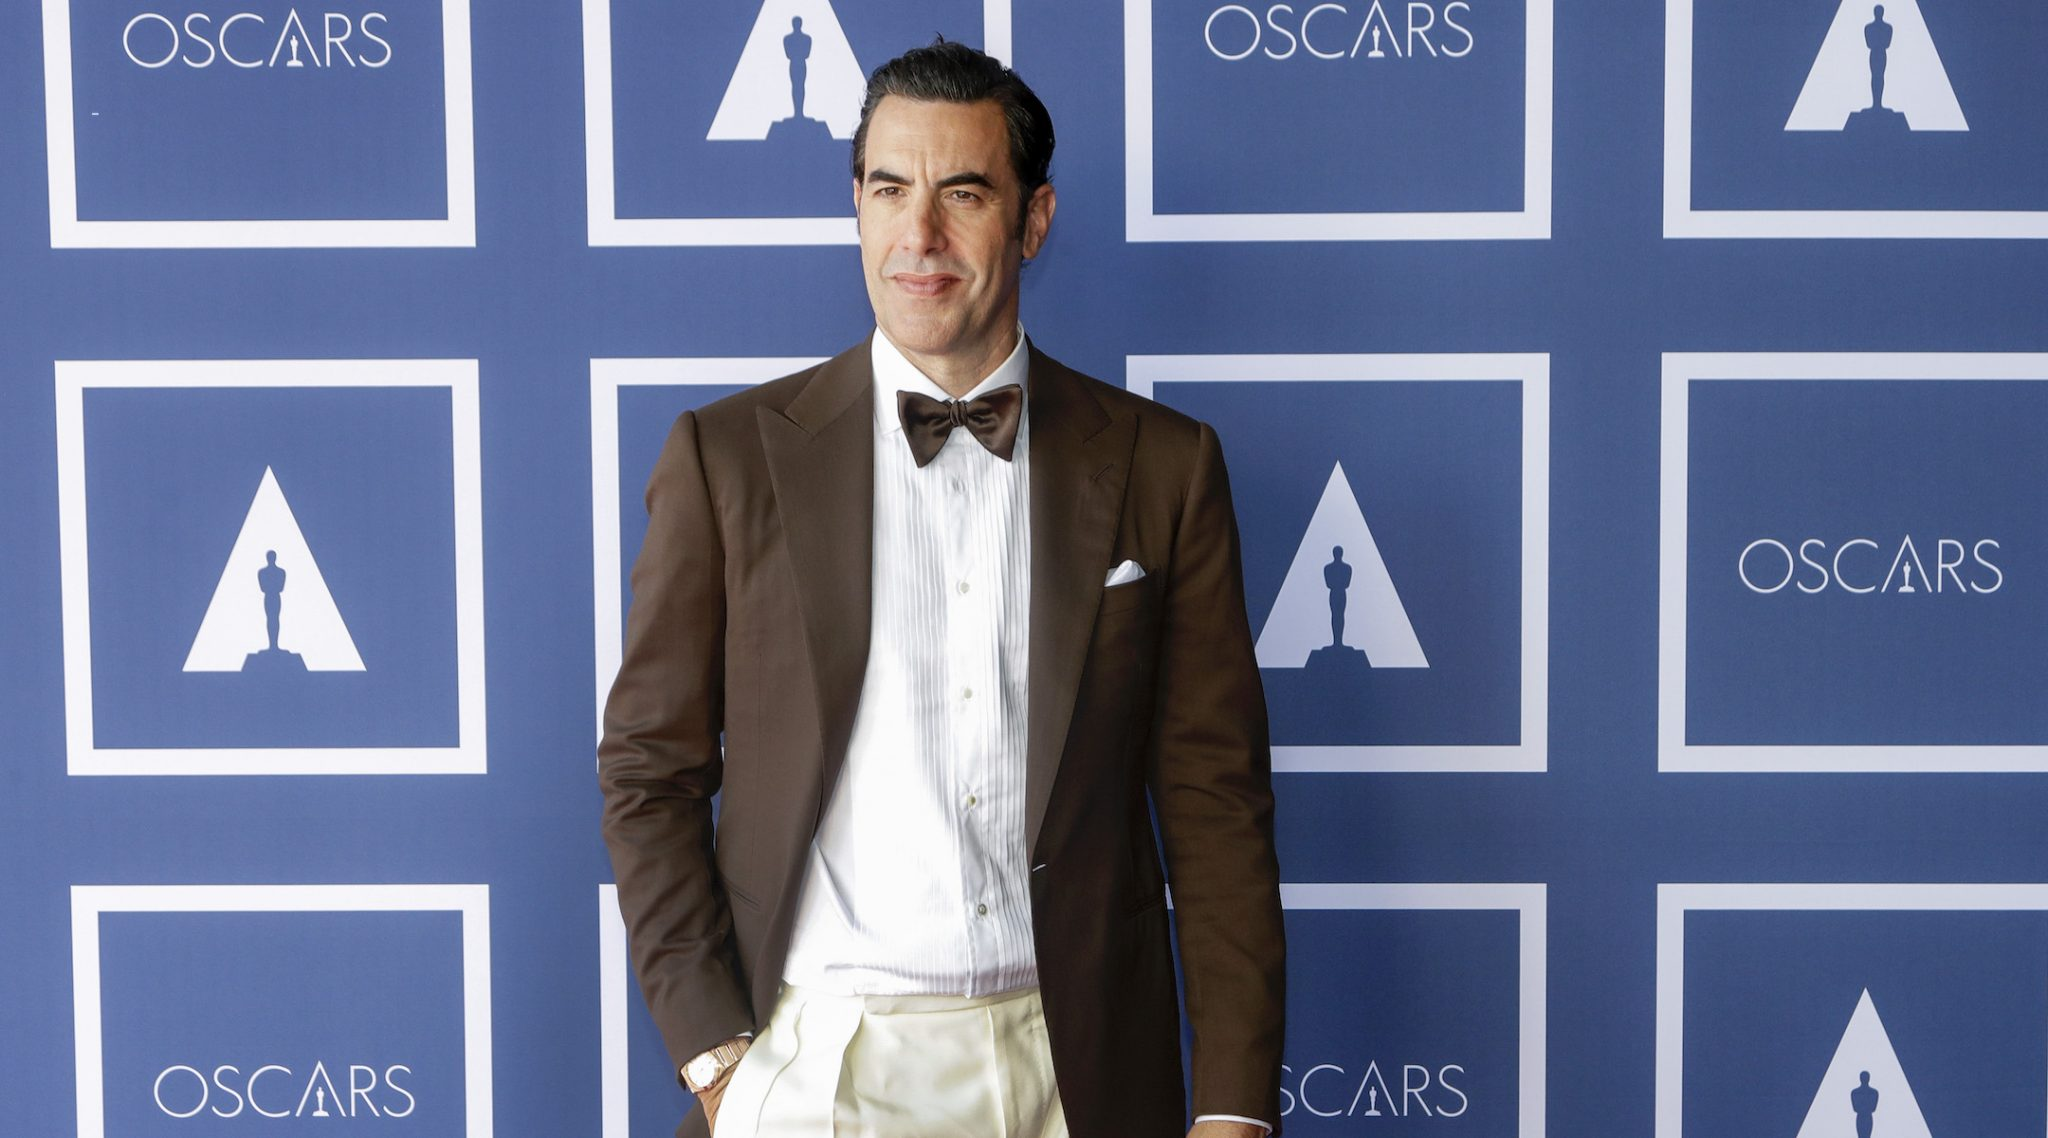 Sacha Baron Cohen poses during a screening of the Oscars in Sydney, Australia, April 25, 2021. (Photo/JTA-Rick Rycroft-Pool-Getty Images)